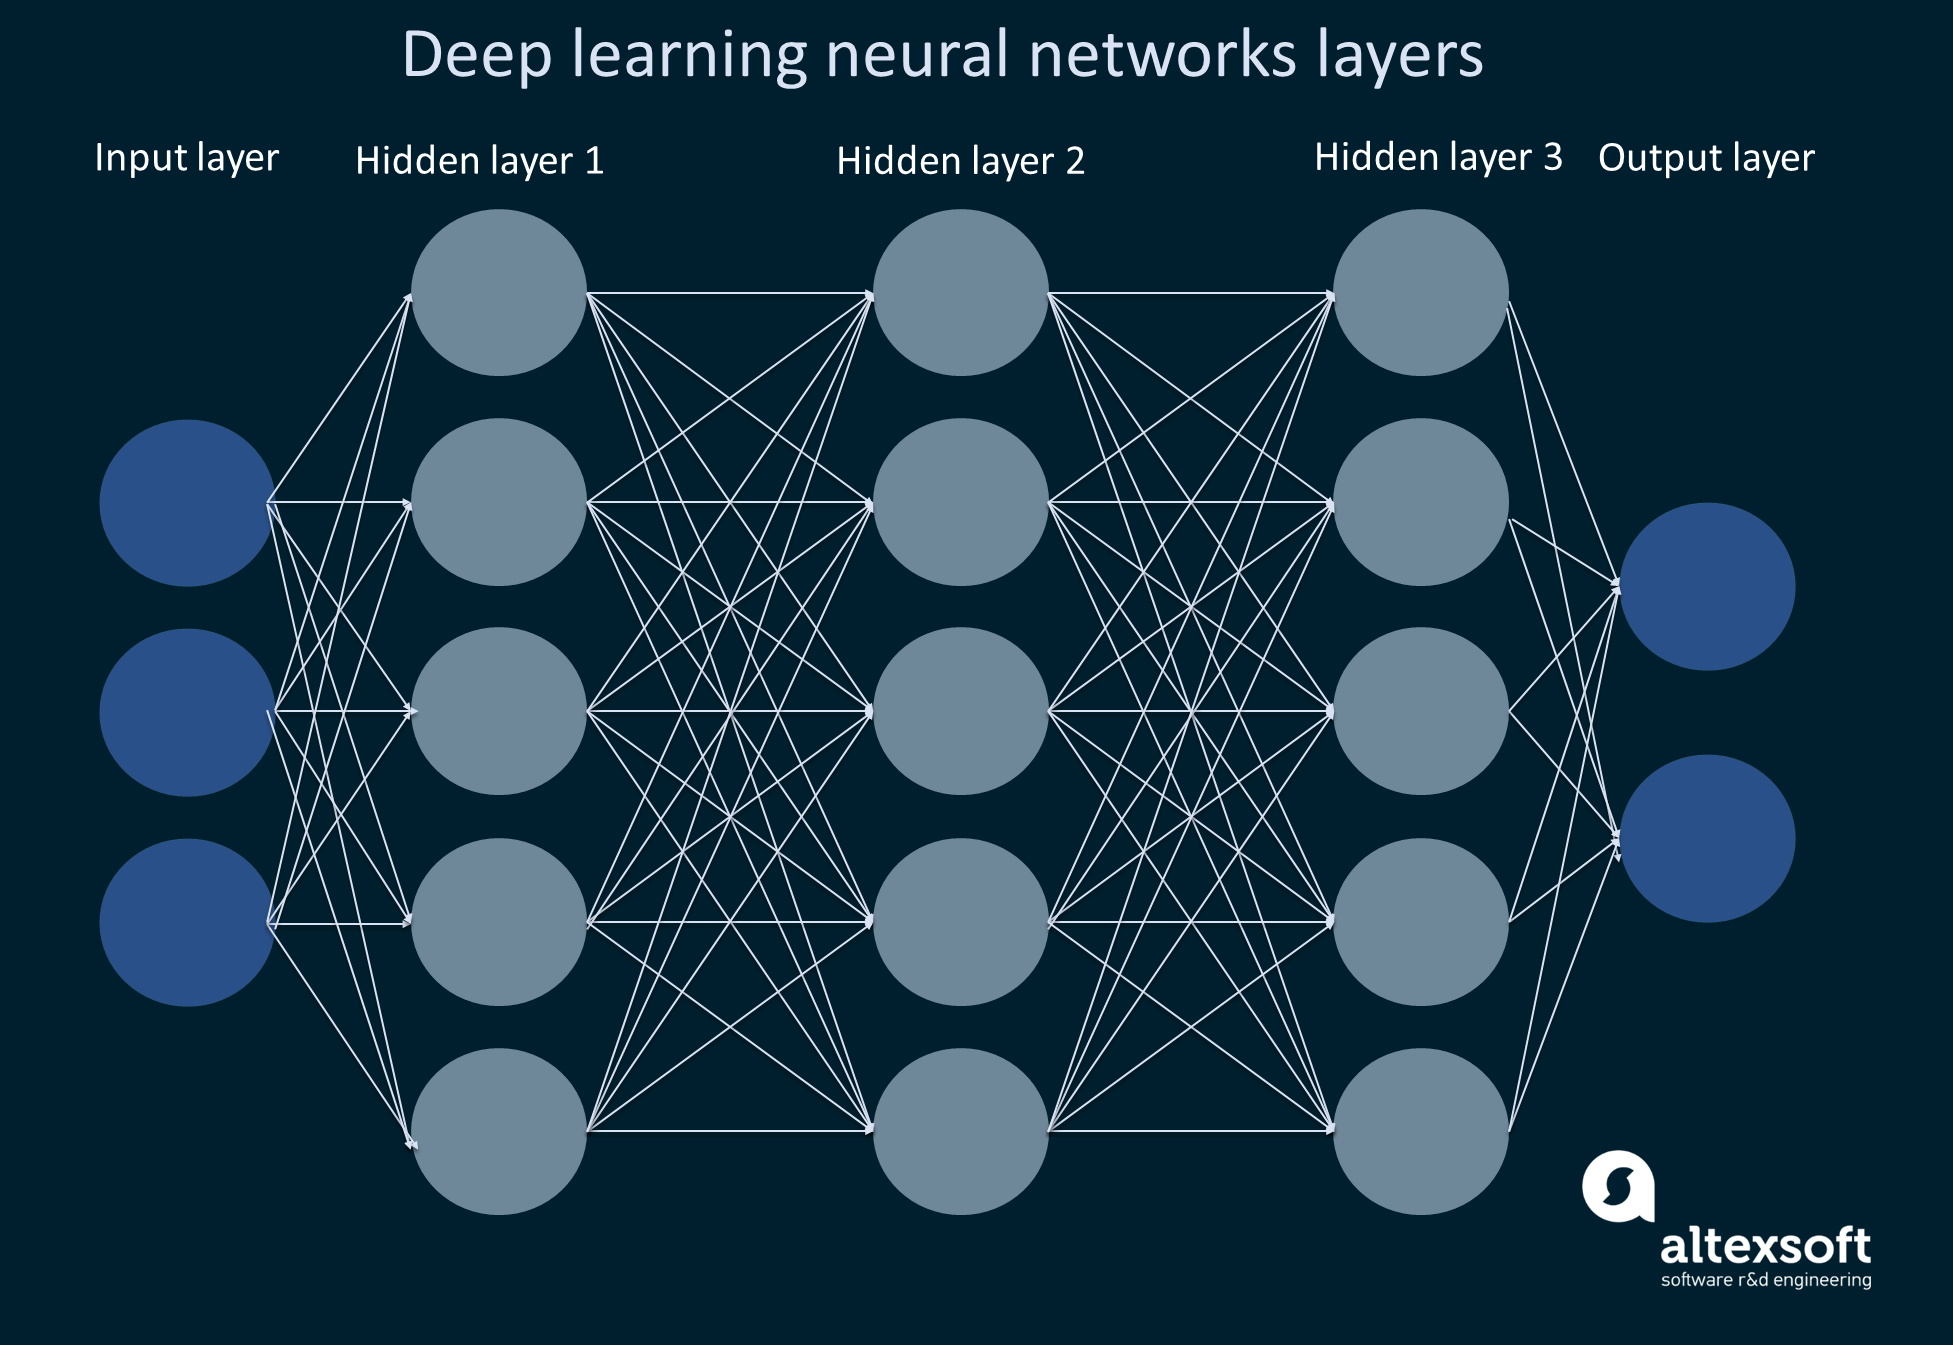 Illustration of deep learning neural networks with three hidden layers